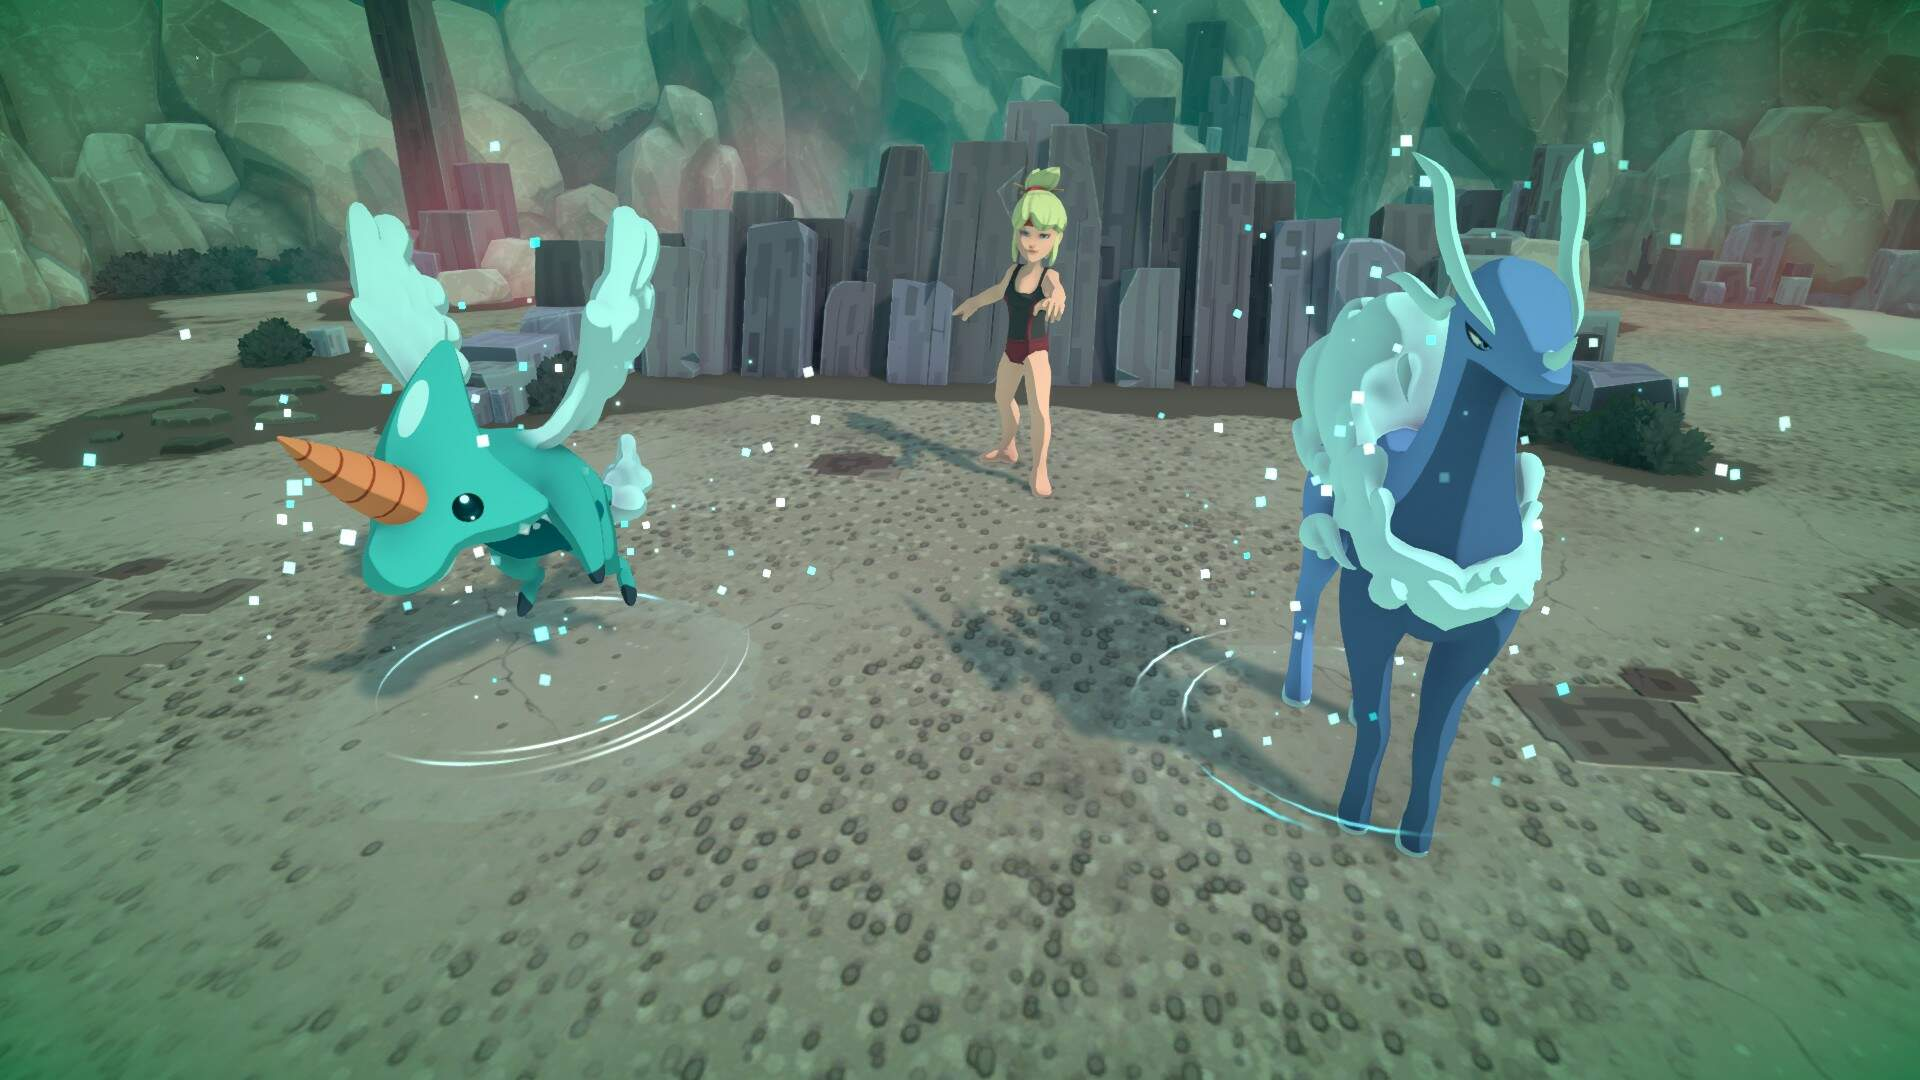 Temtem: Where to Find and Catch Oceara